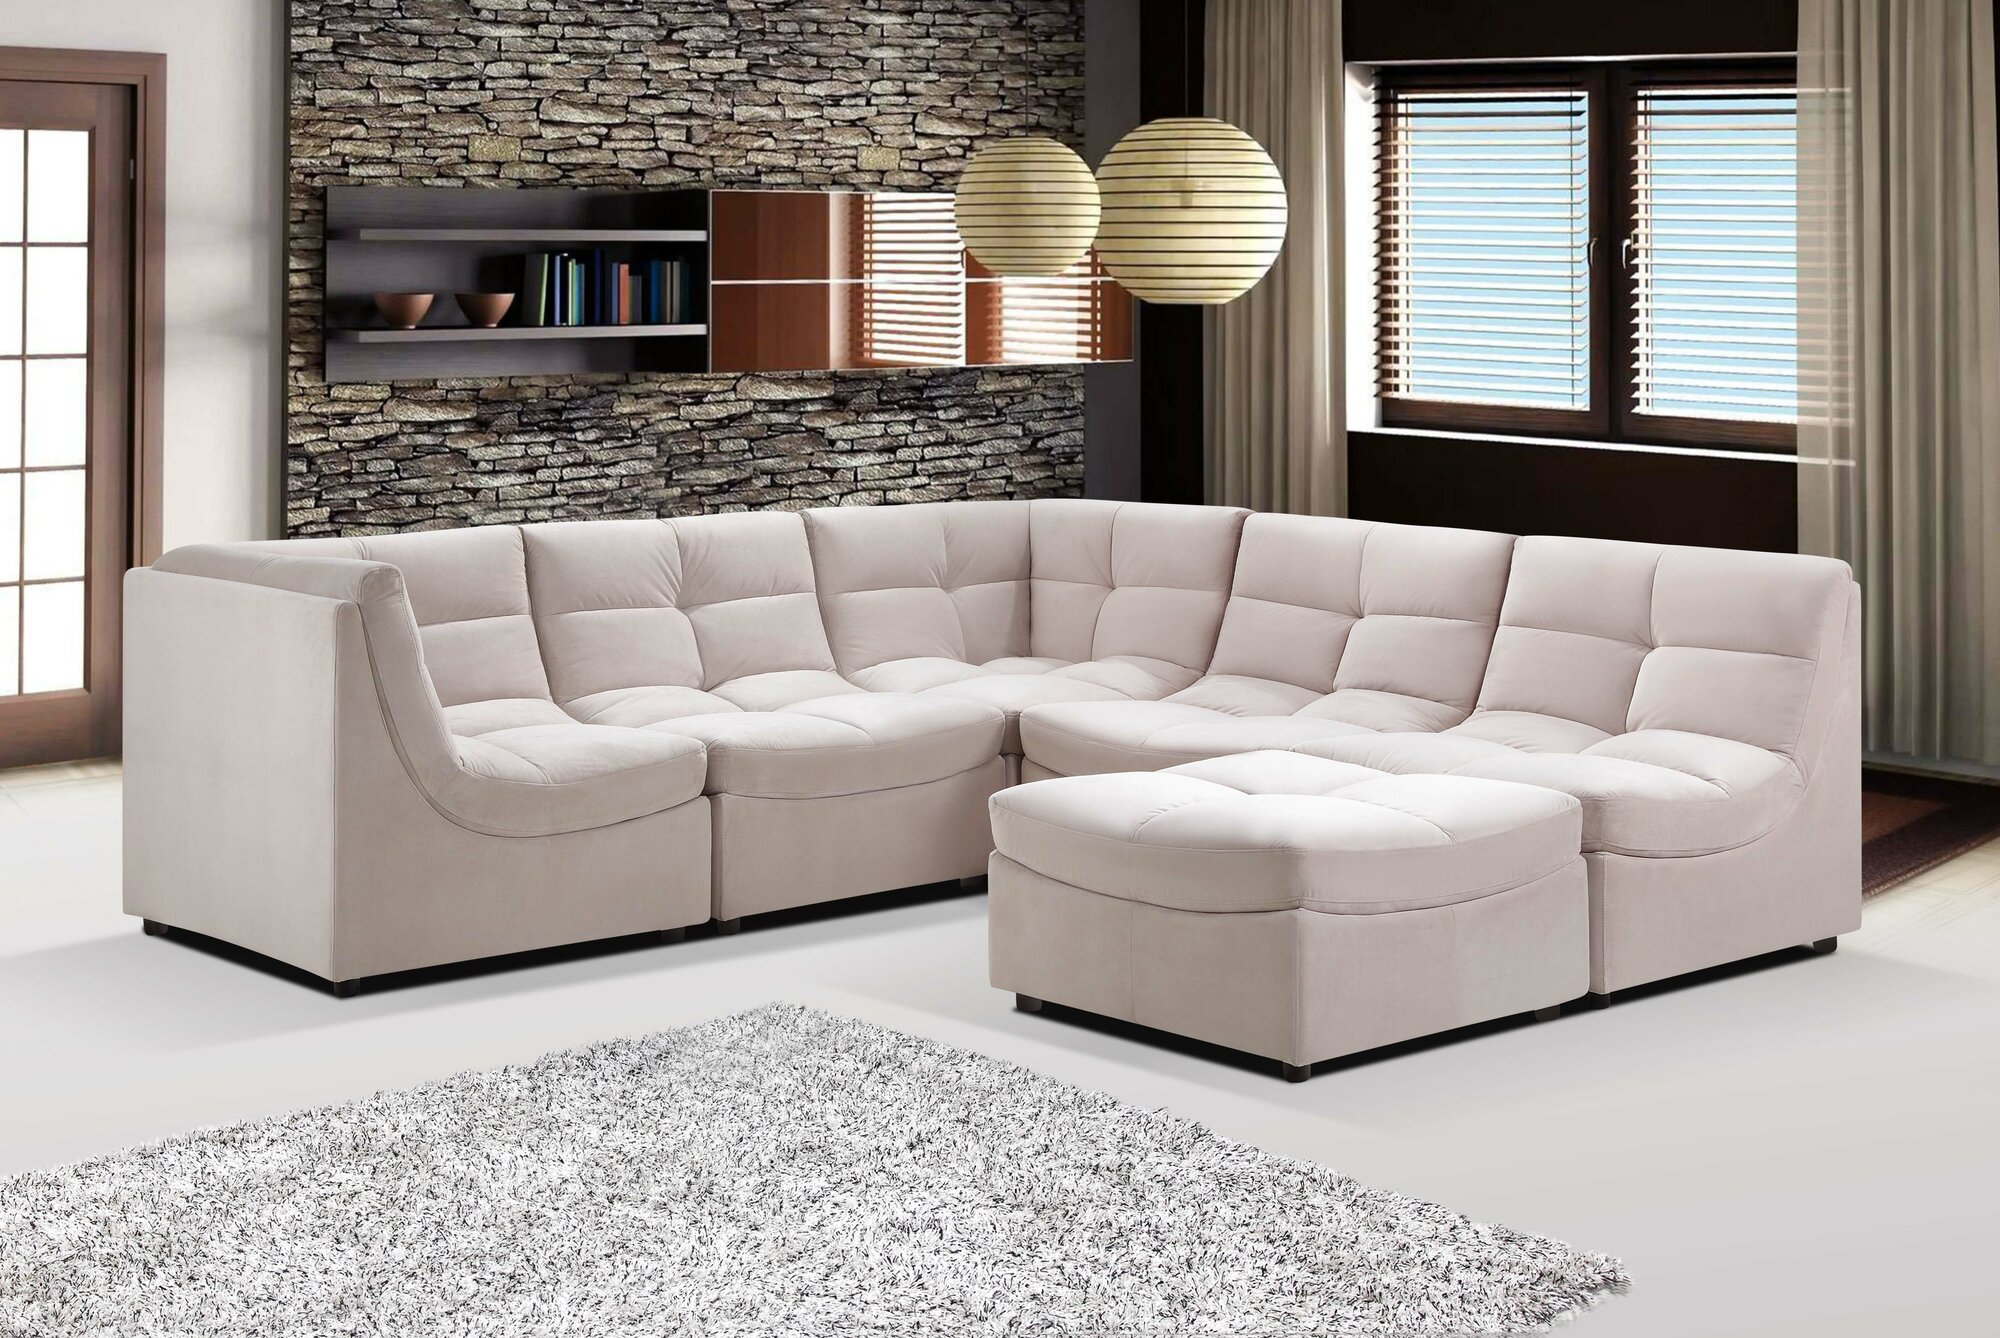 Modern Living Room Modular Sectional Sofa - Buy Sectional ...